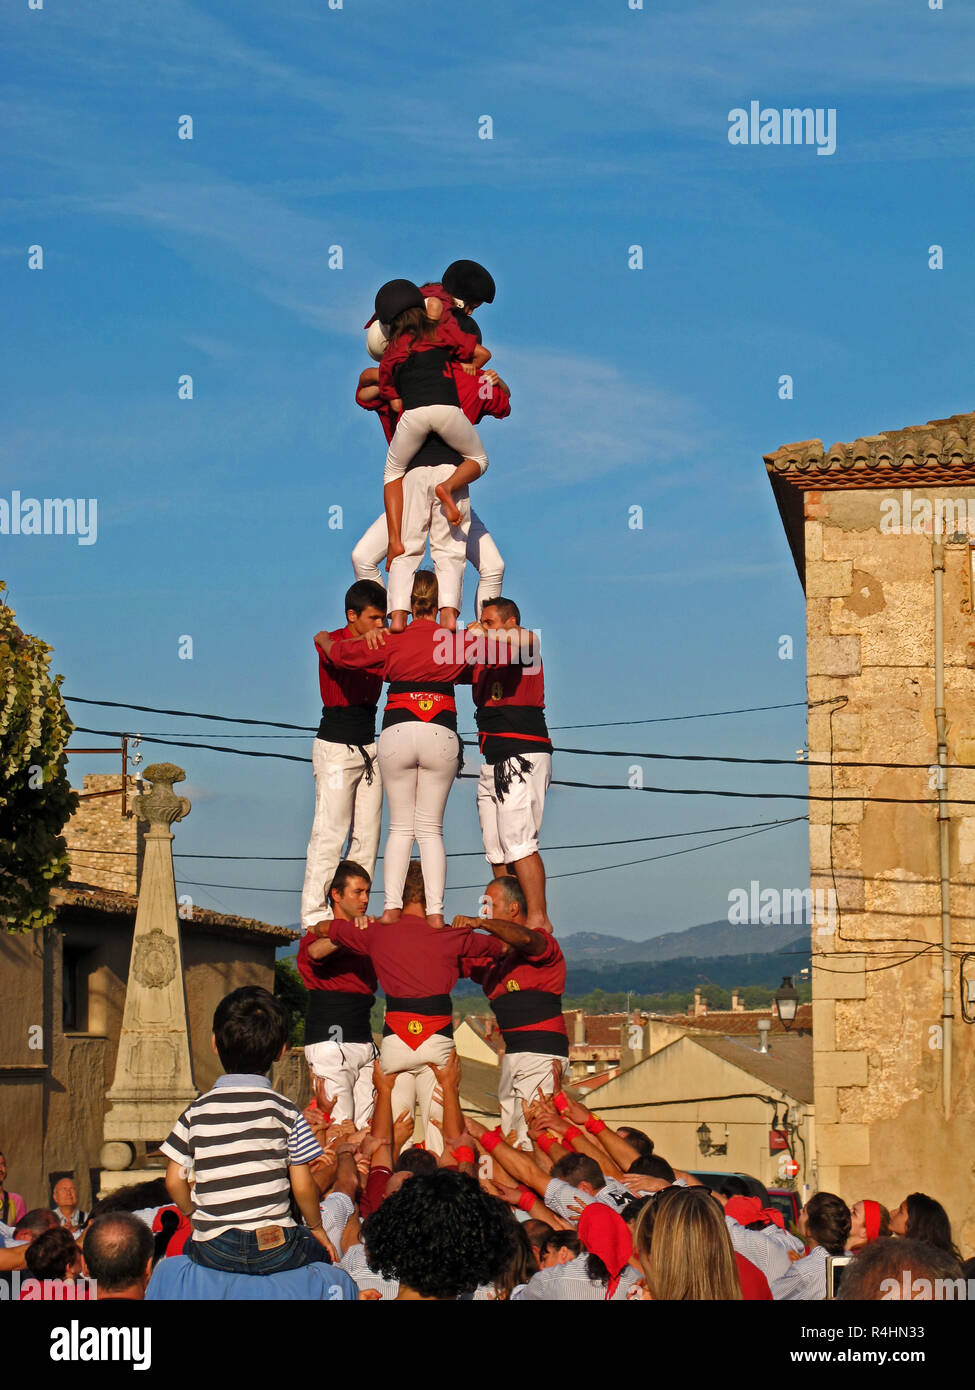 castellers building a human tower at a competition in montblanc, catalonia, spain - Stock Image